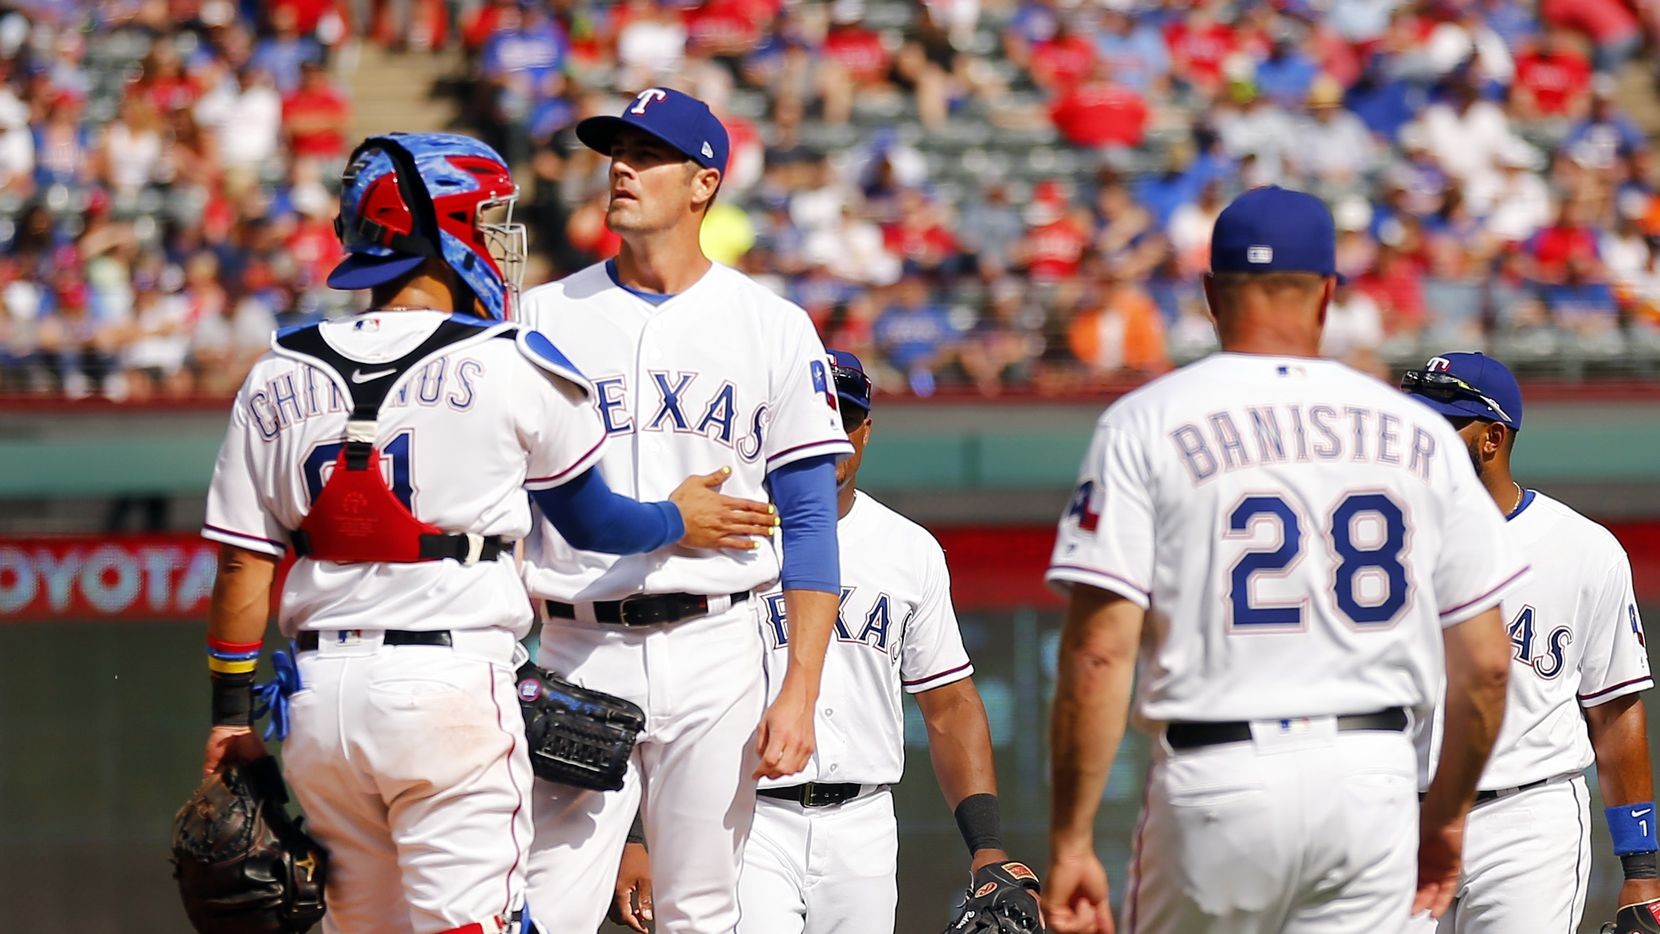 Texas Rangers catcher Robinson Chirinos pats starting pitcher Cole Hamels on the side as manager Jeff Banister (28) comes to pull him in the sixth inning of their Opening Day game against the Houston Astros at Globe Life Park in Arlington, Texas, Thursday, March 29, 2018. The Astros defeated the Rangers, 4-1. (Tom Fox/The Dallas Morning News)